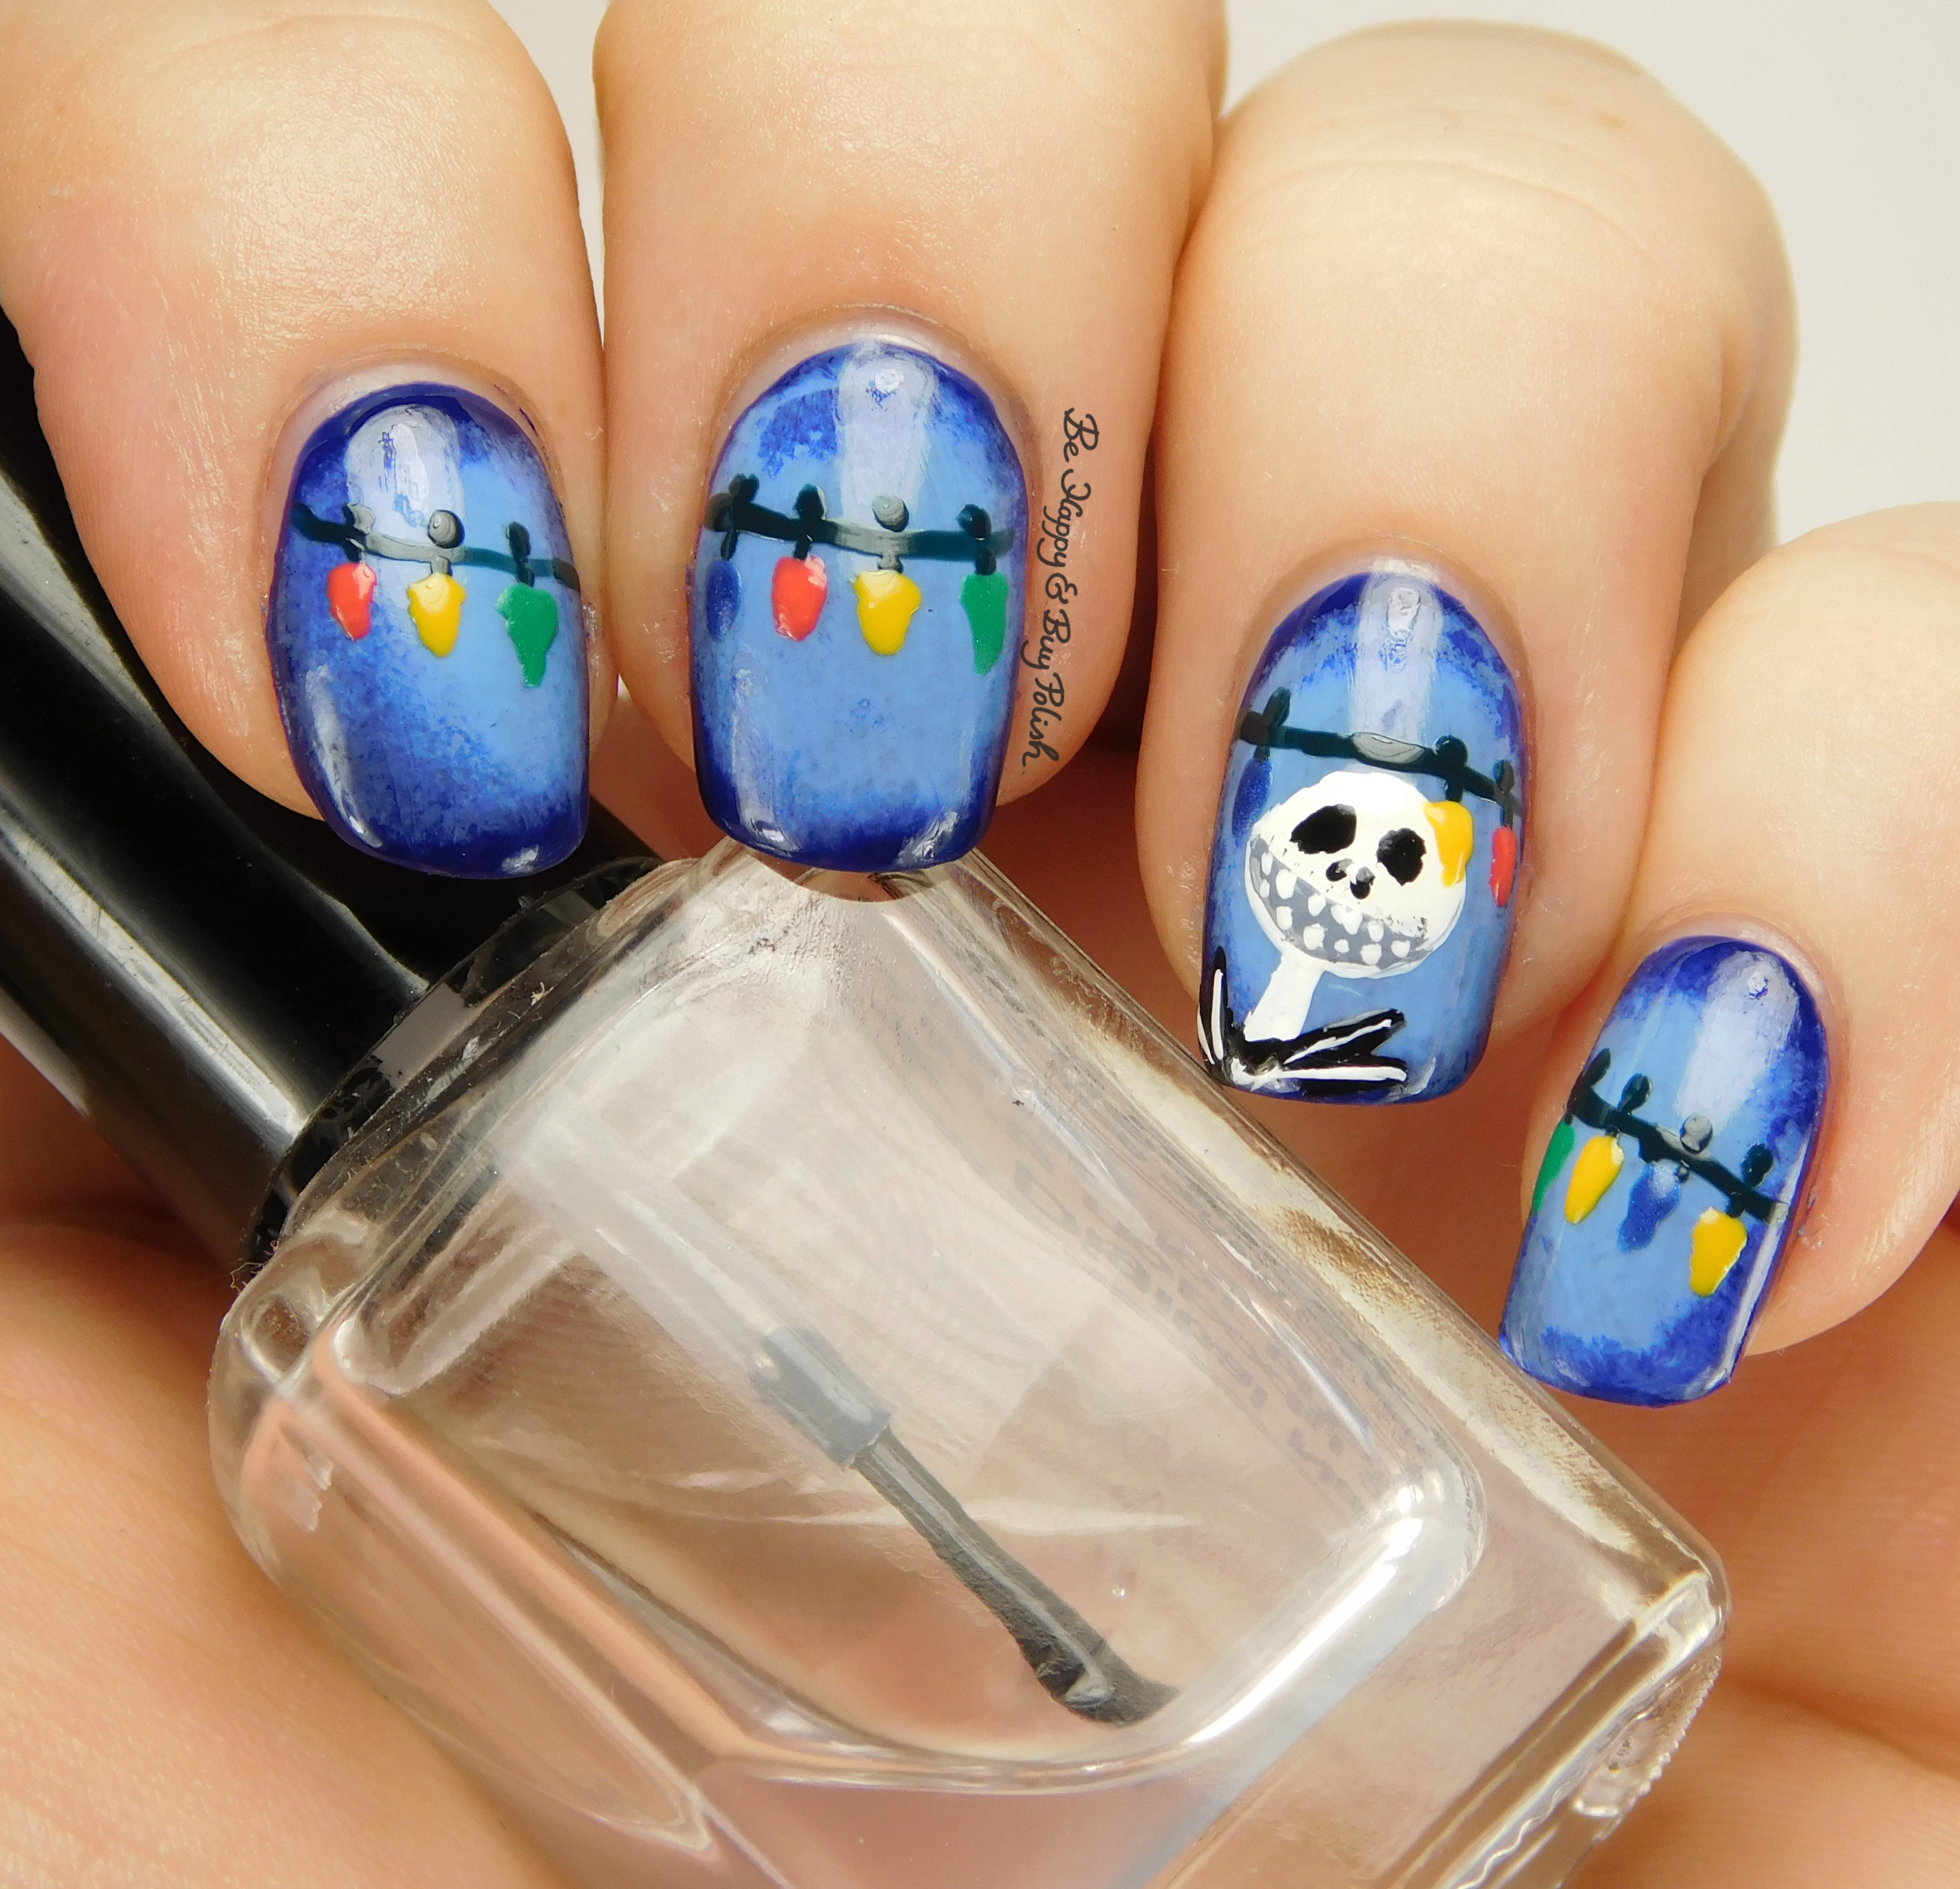 12 Days Of Christmas Nail Art Challenge Nightmare Before Christmas